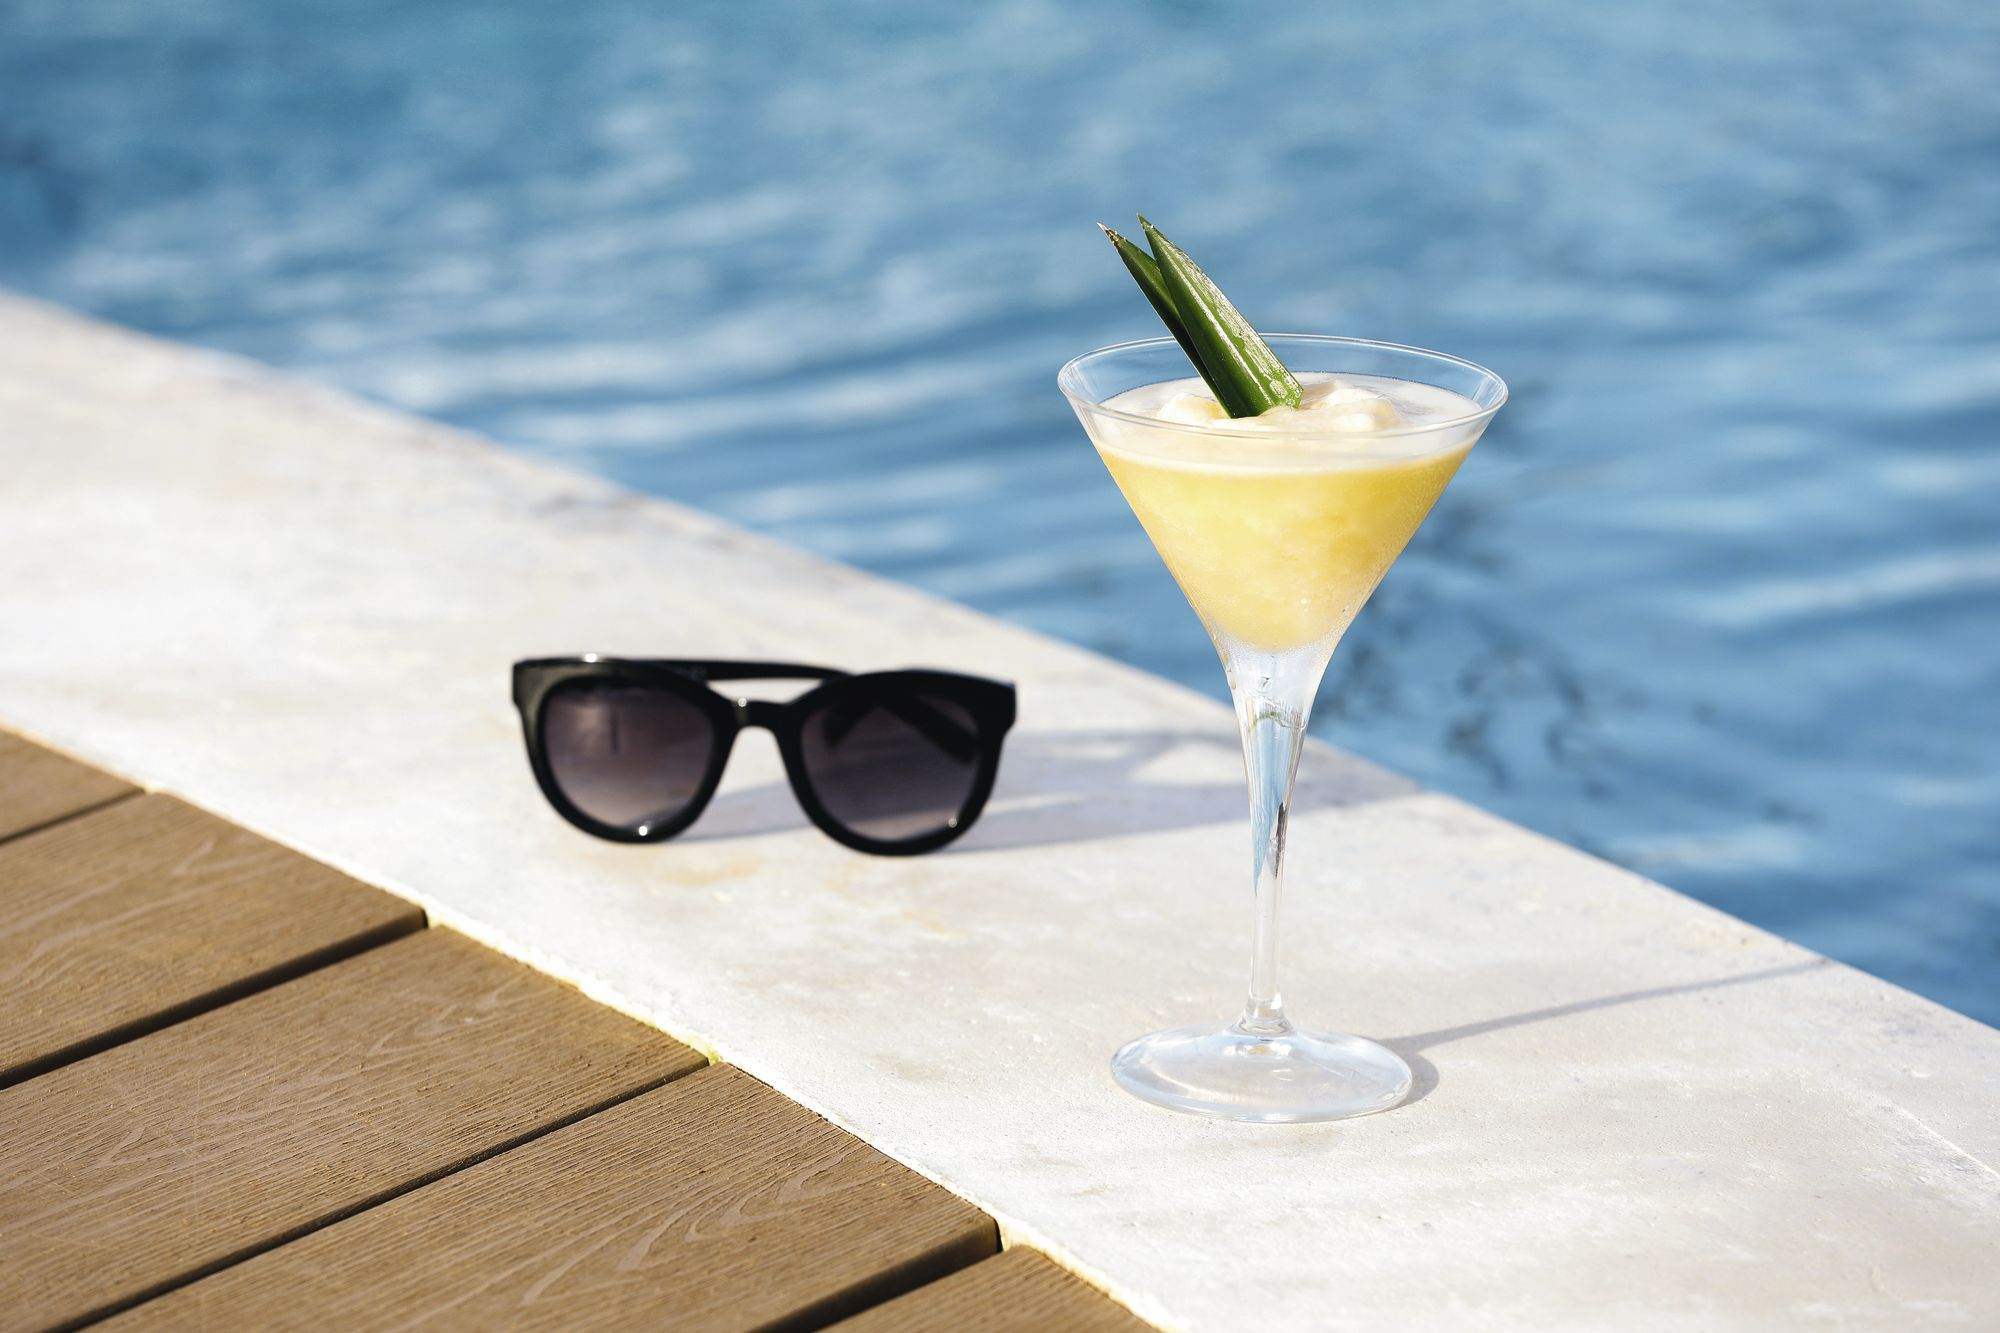 sunglasses and cocktail by pool